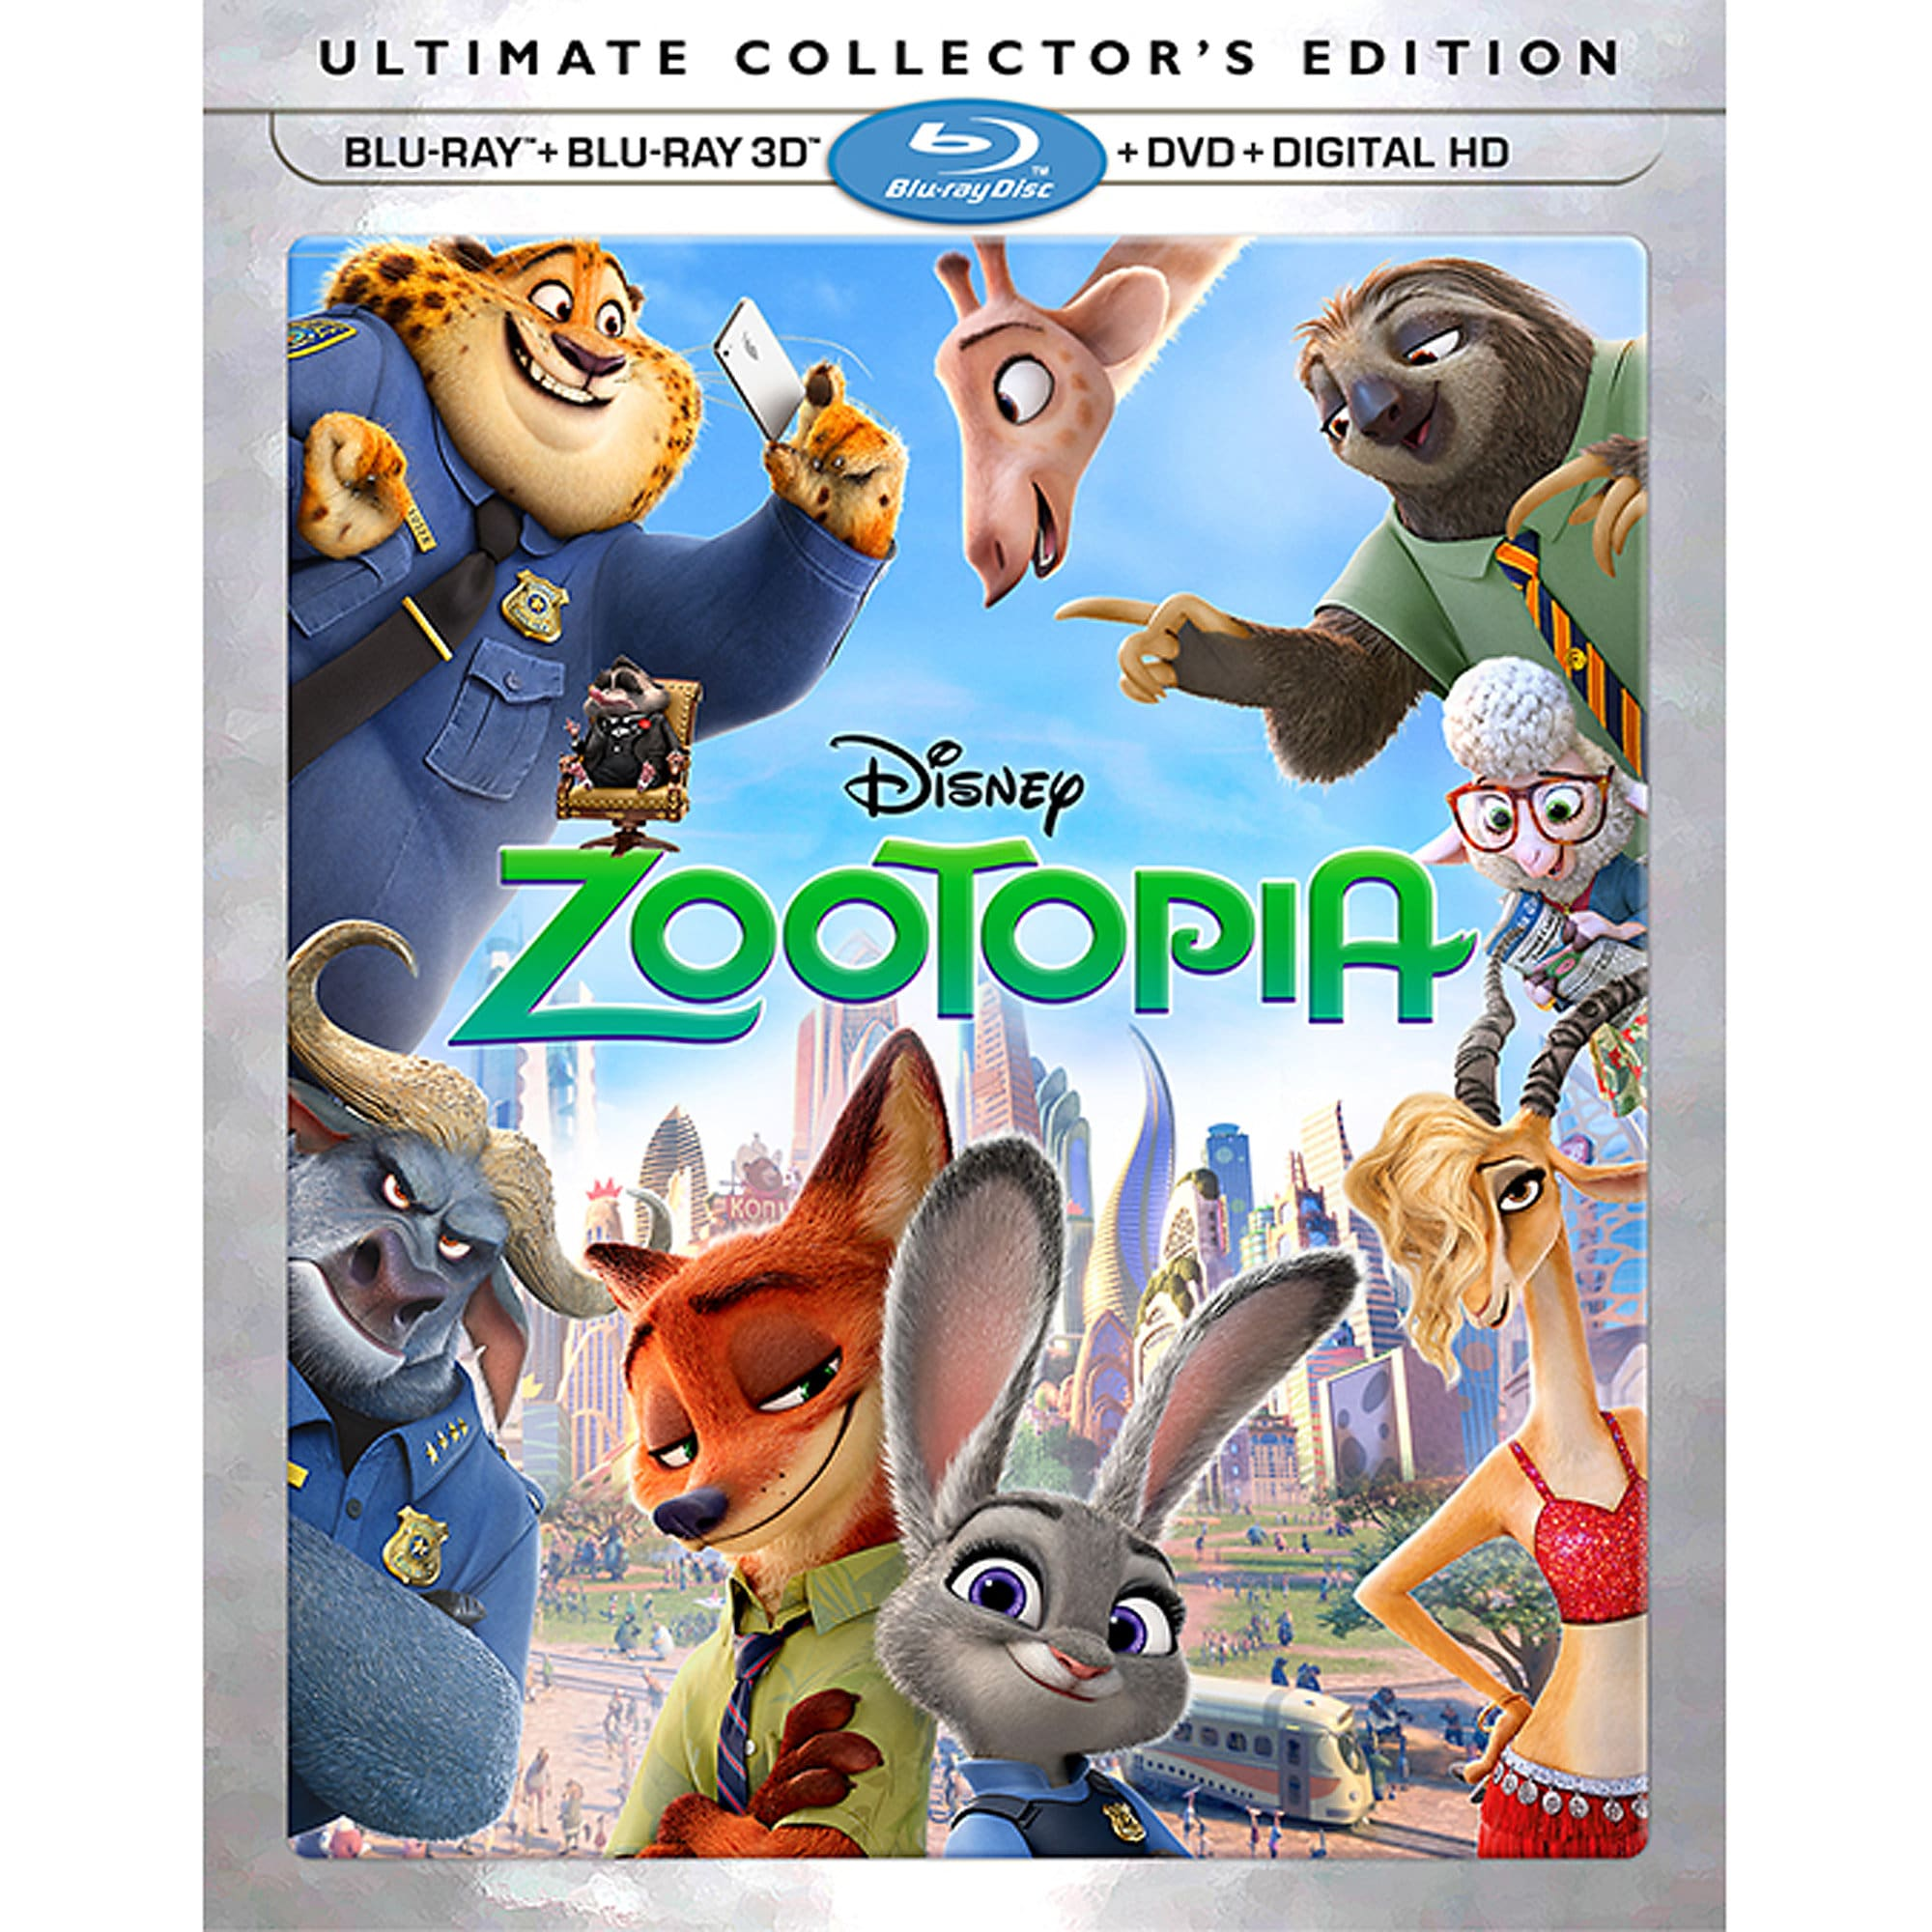 Zootopia Ultimate Collector's Edition 3D Combo Pack